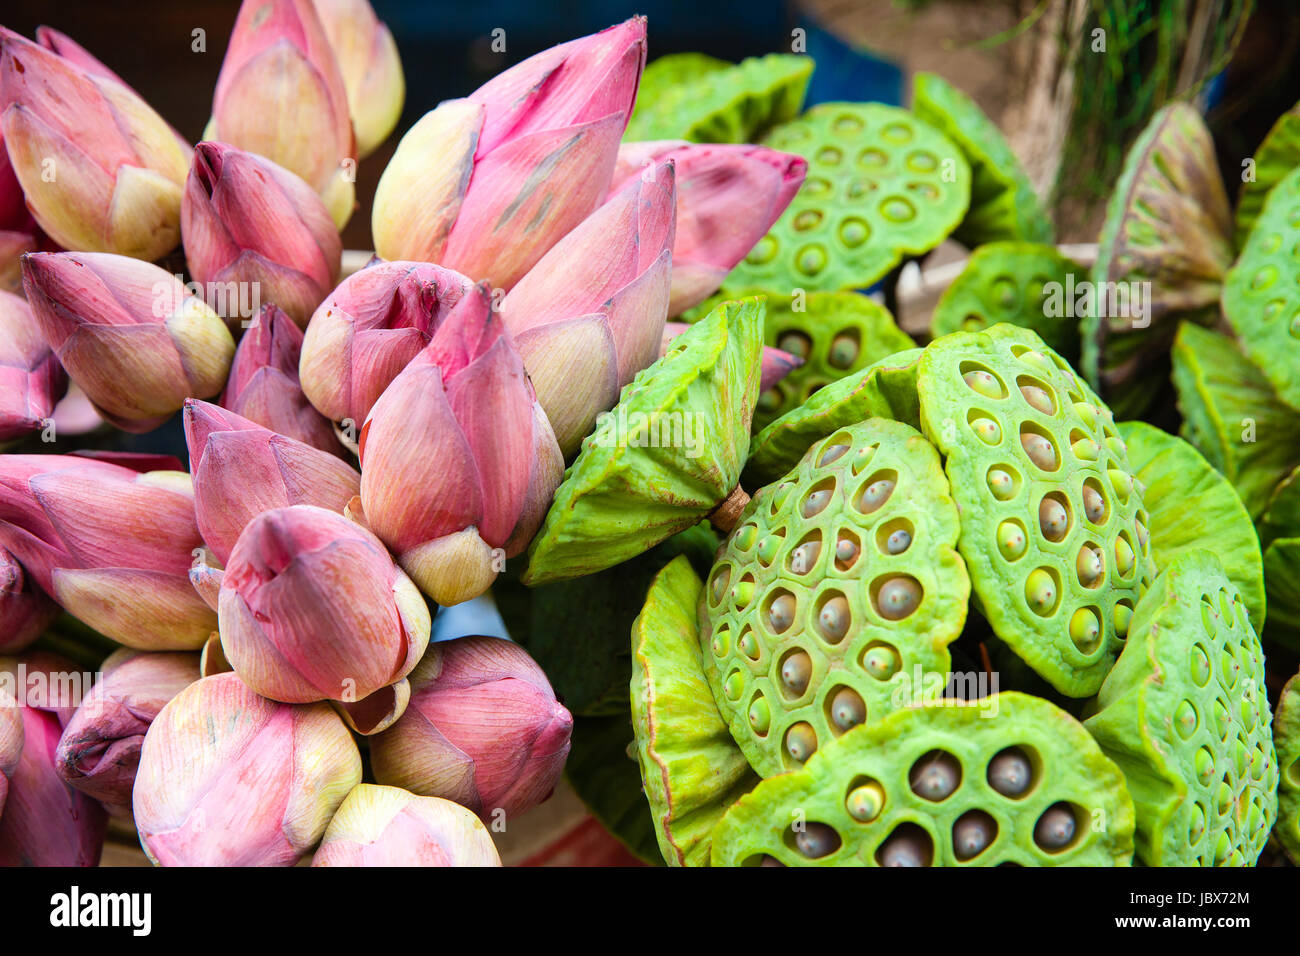 Bunch of lotus flowers for sale stock photo 145020476 alamy bunch of lotus flowers for sale izmirmasajfo Image collections